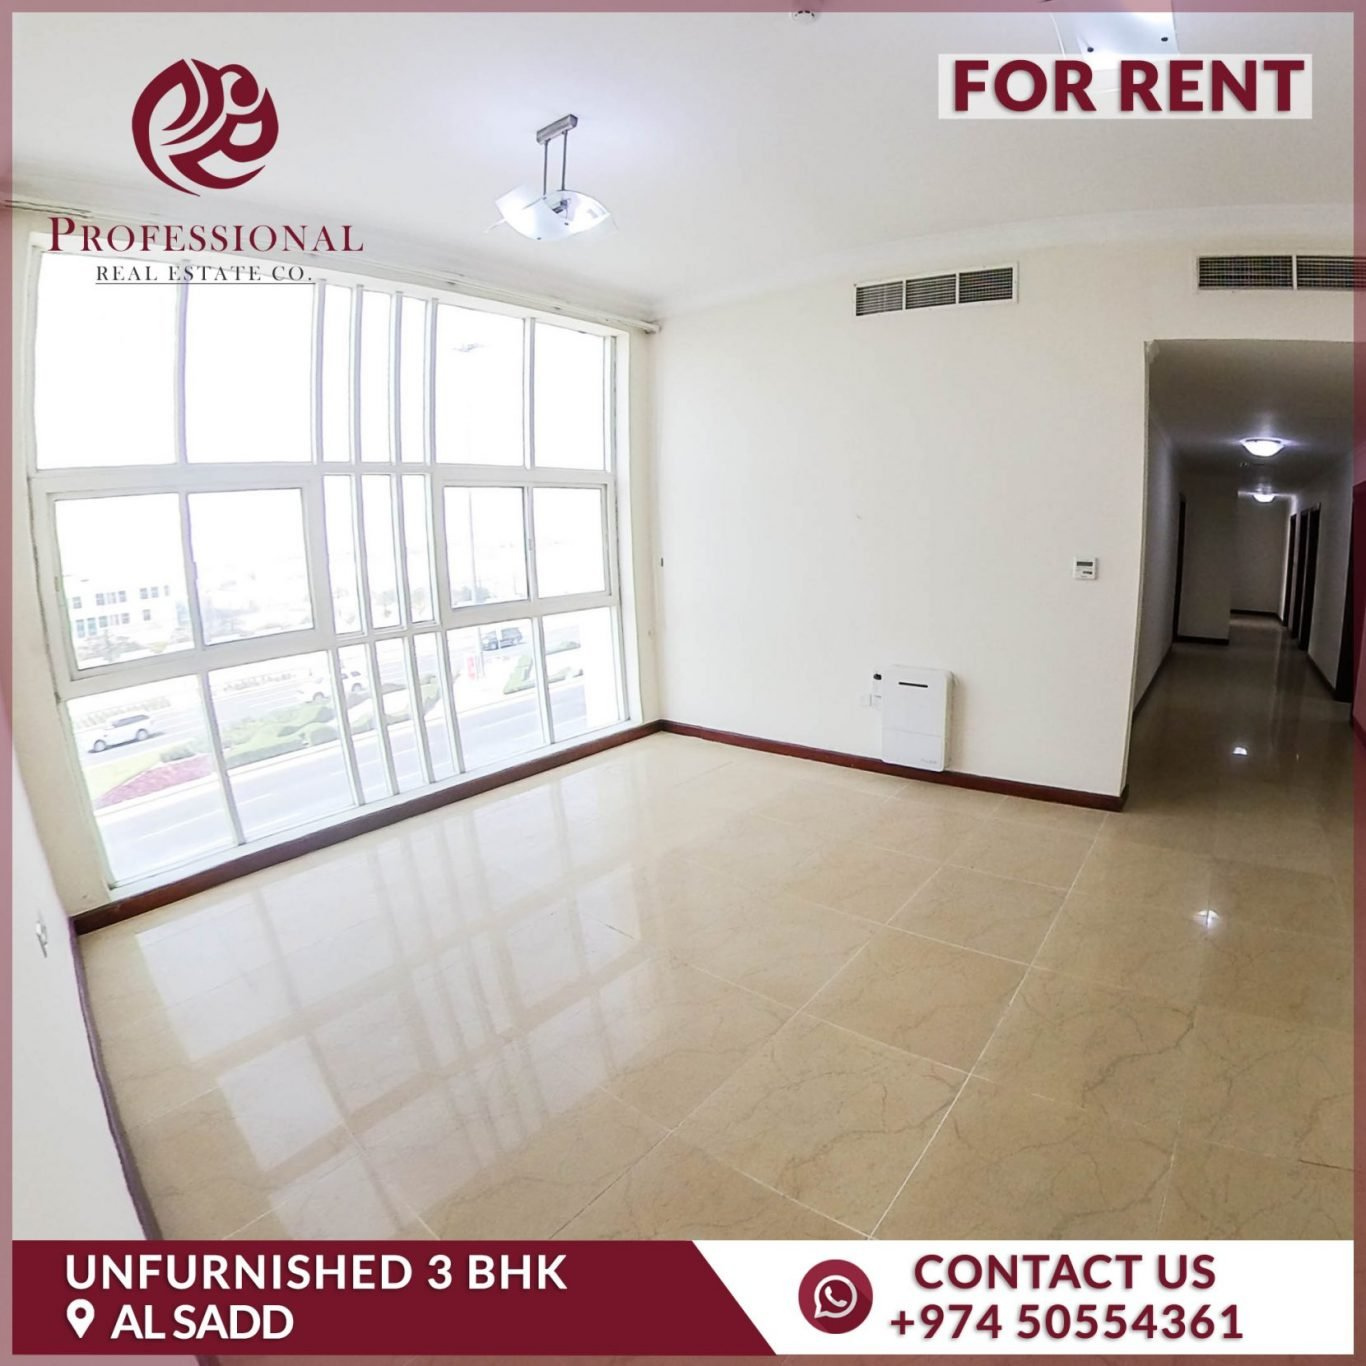 Unfurnished, 3 BHK Apartment in Al Sadd